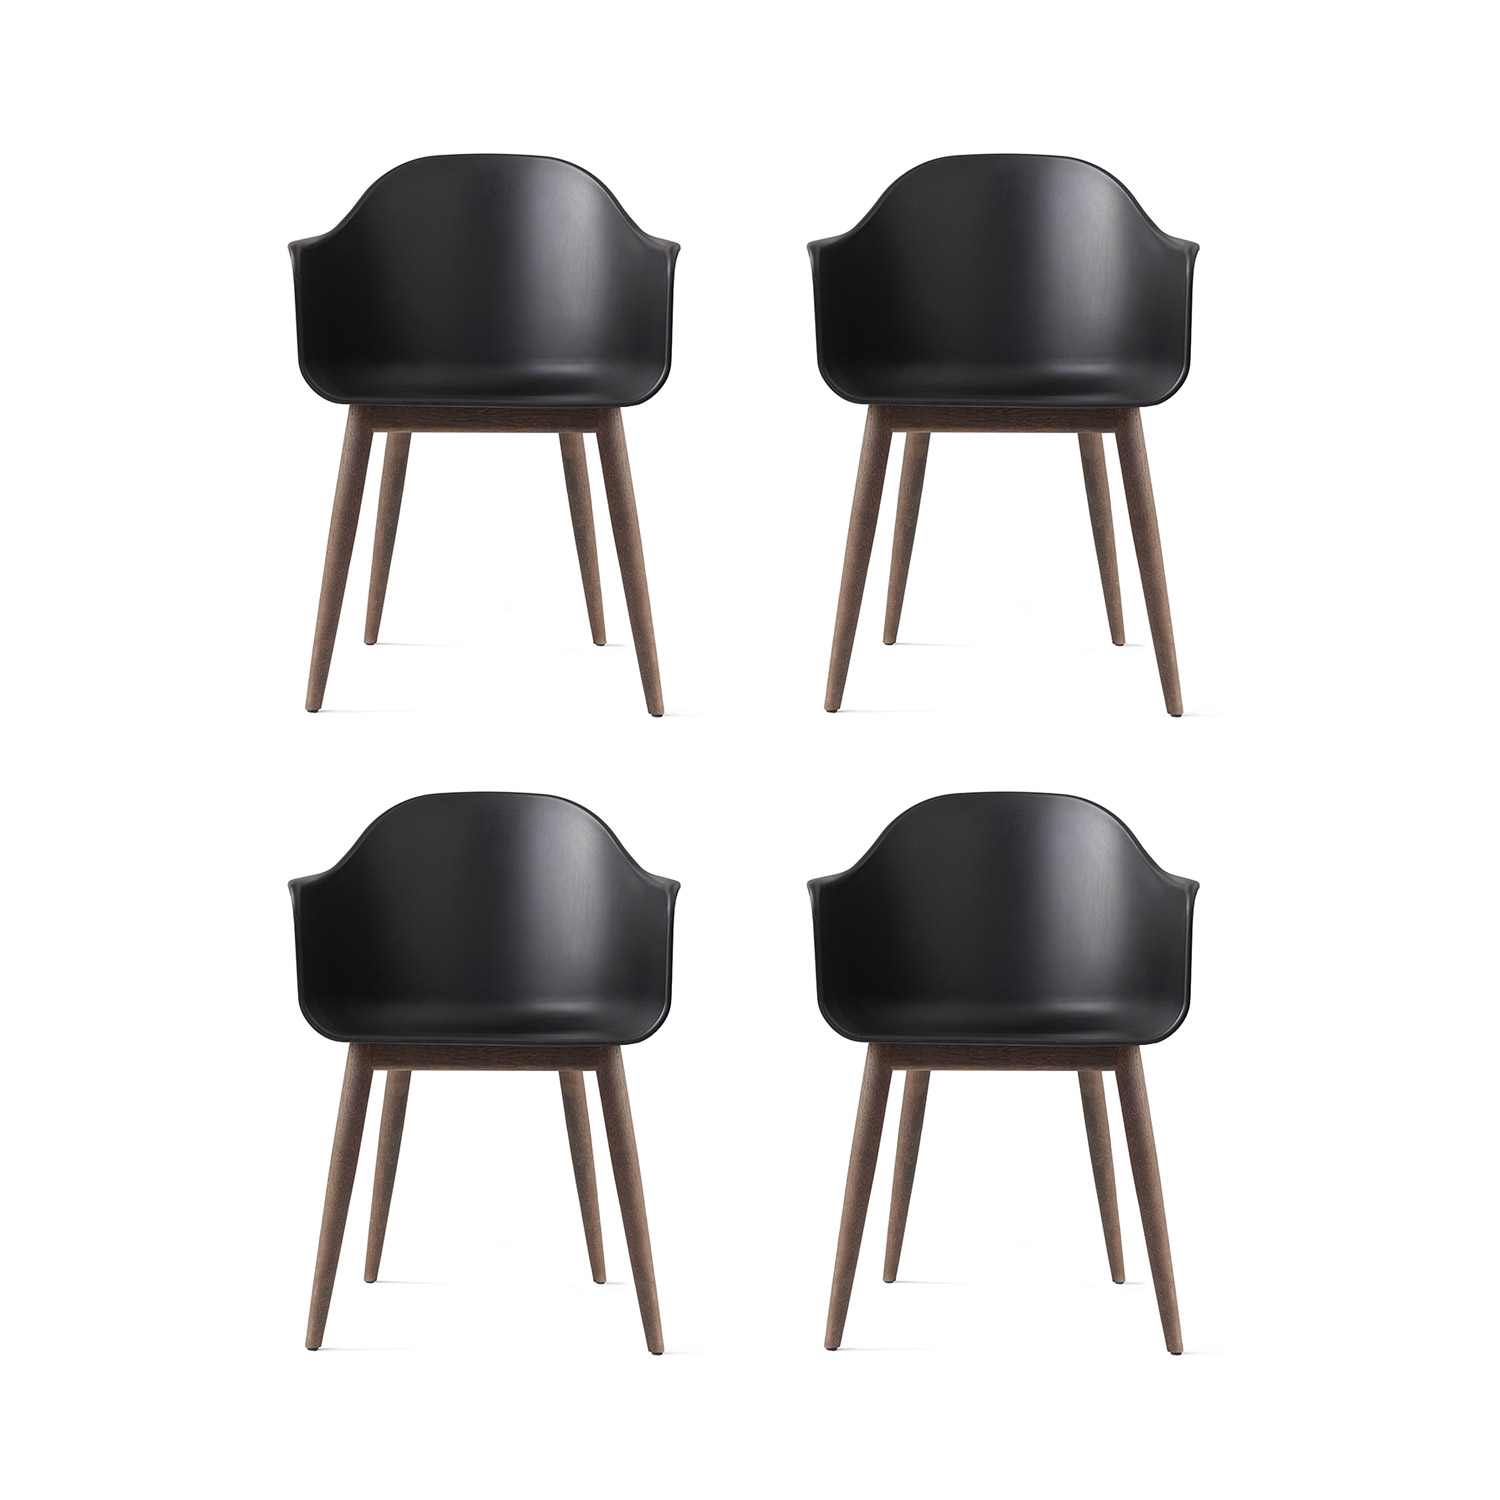 Harbour Chair 4-pack, svart/mörk ek